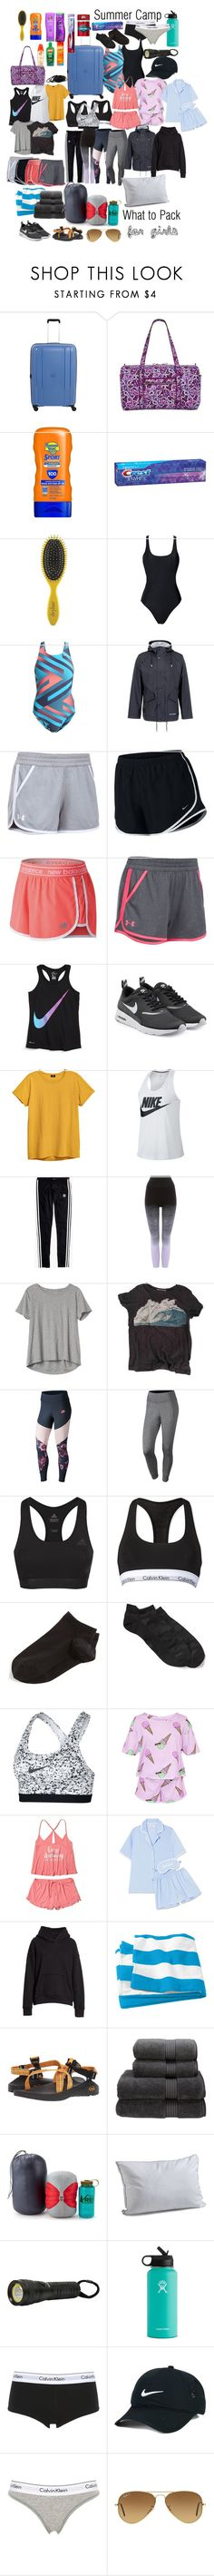 """""""What to pack for Summer Camp"""" by majacool2006 ❤ liked on Polyvore featuring Vera Bradley, Banana Boat, Reef, Herbal Essences, Colgate, Drybar, NIKE, Stutterheim, Under Armour and New Balance"""